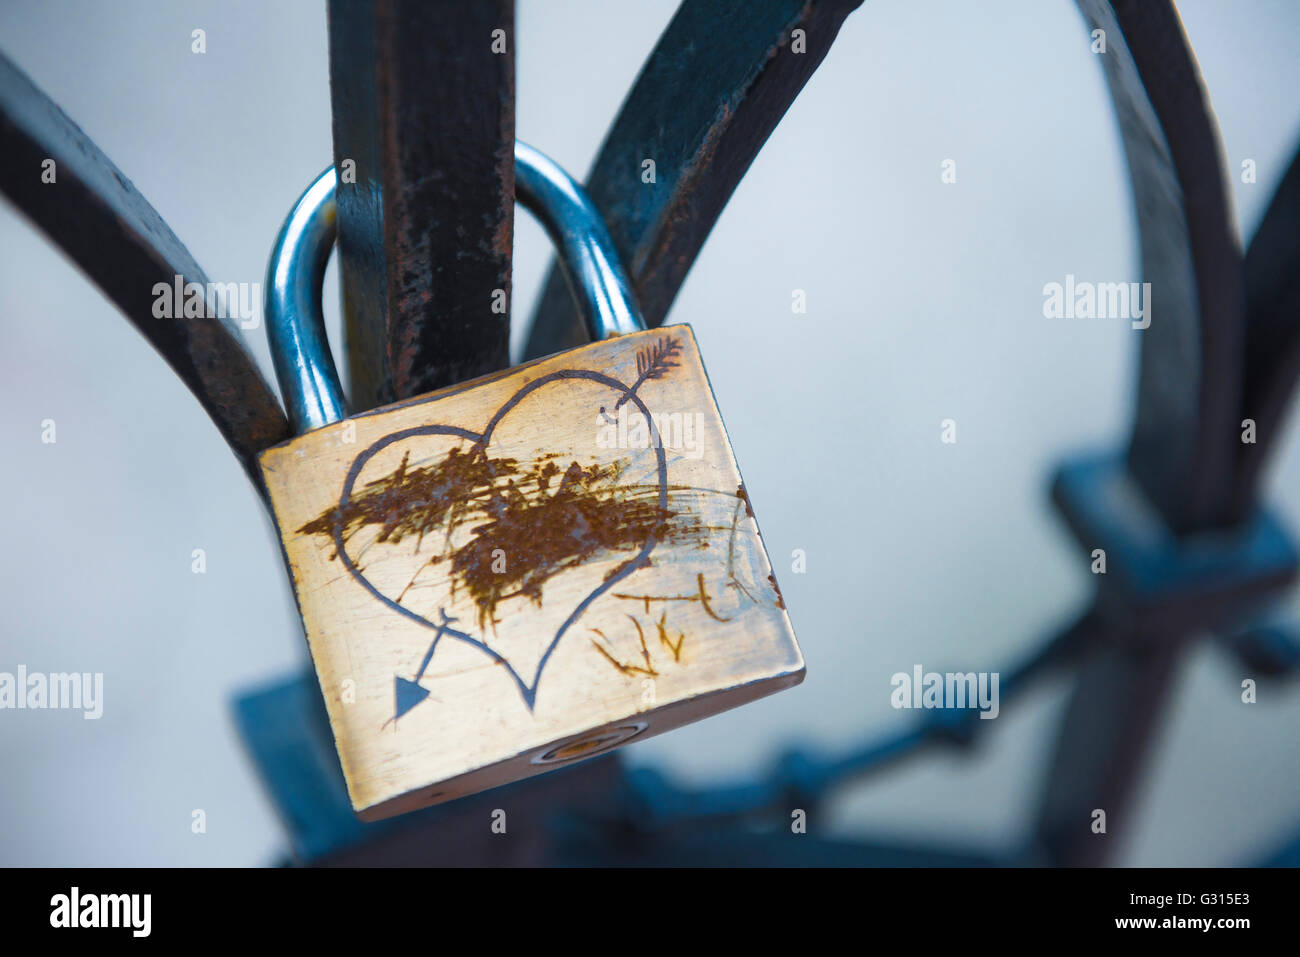 Relationship breakup, a 'love lock' with its lovers' names scratched out, implying a separation, Budapest, - Stock Image